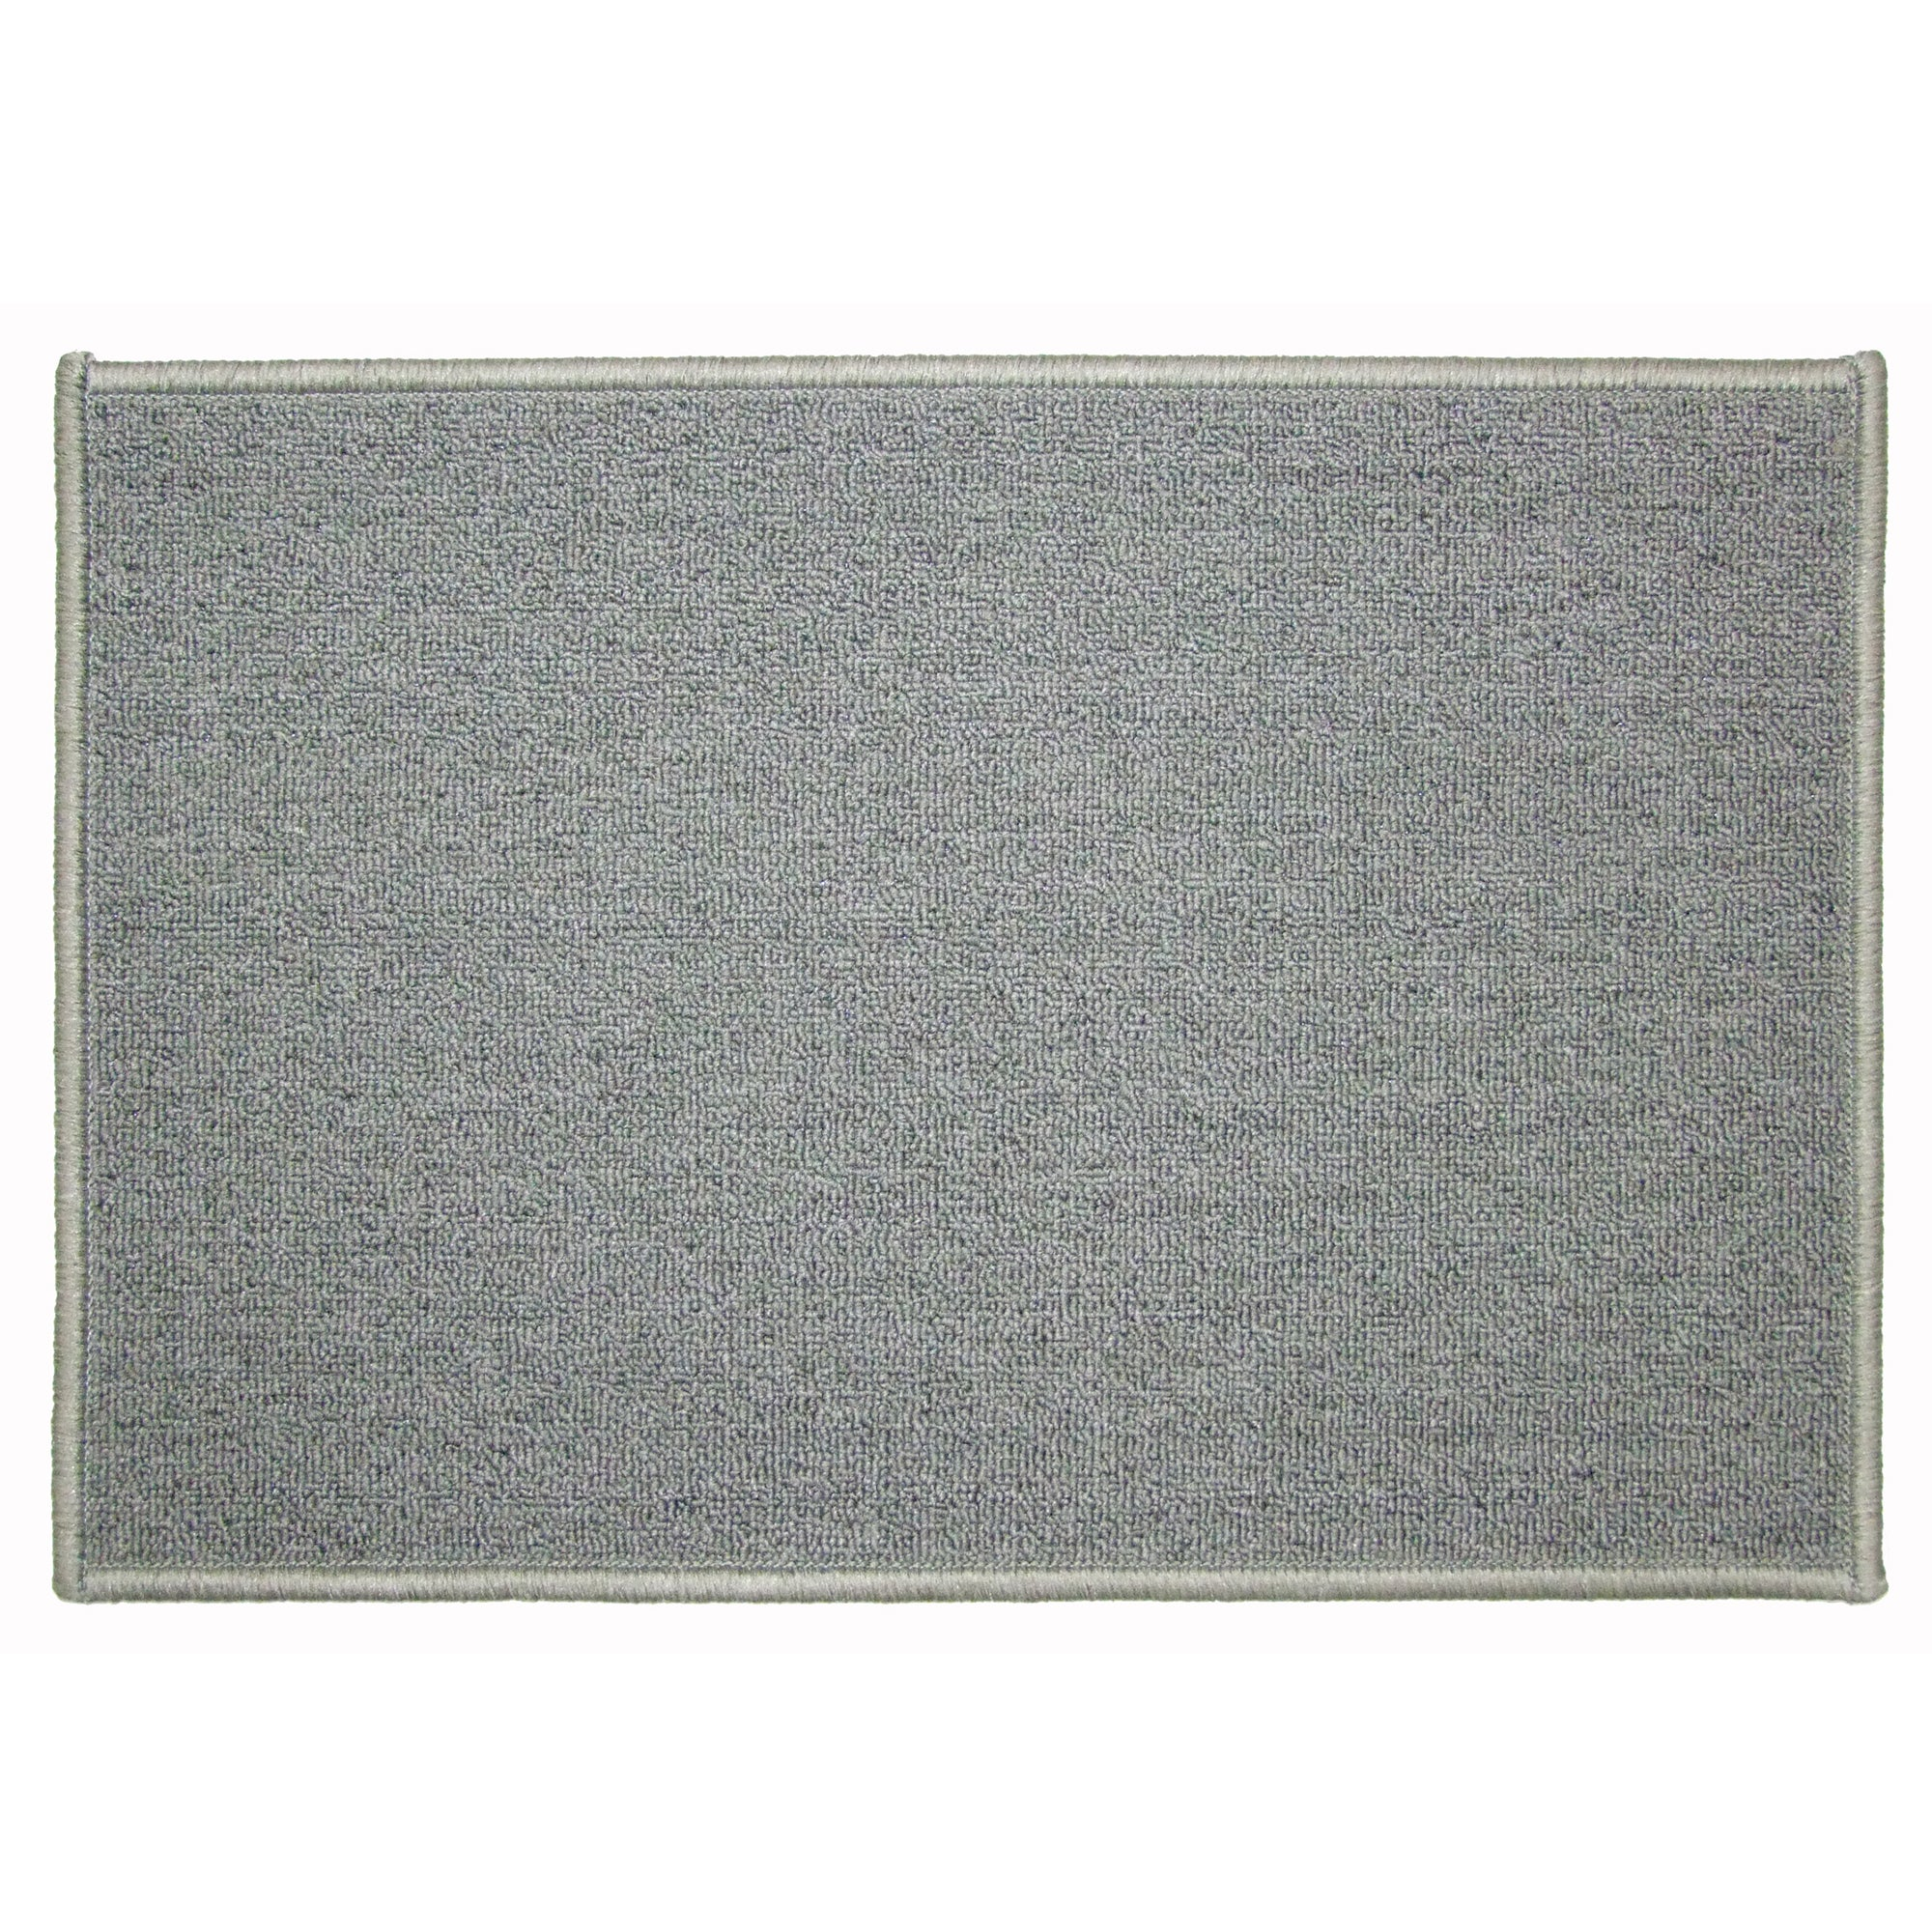 Grey Washable Doormat